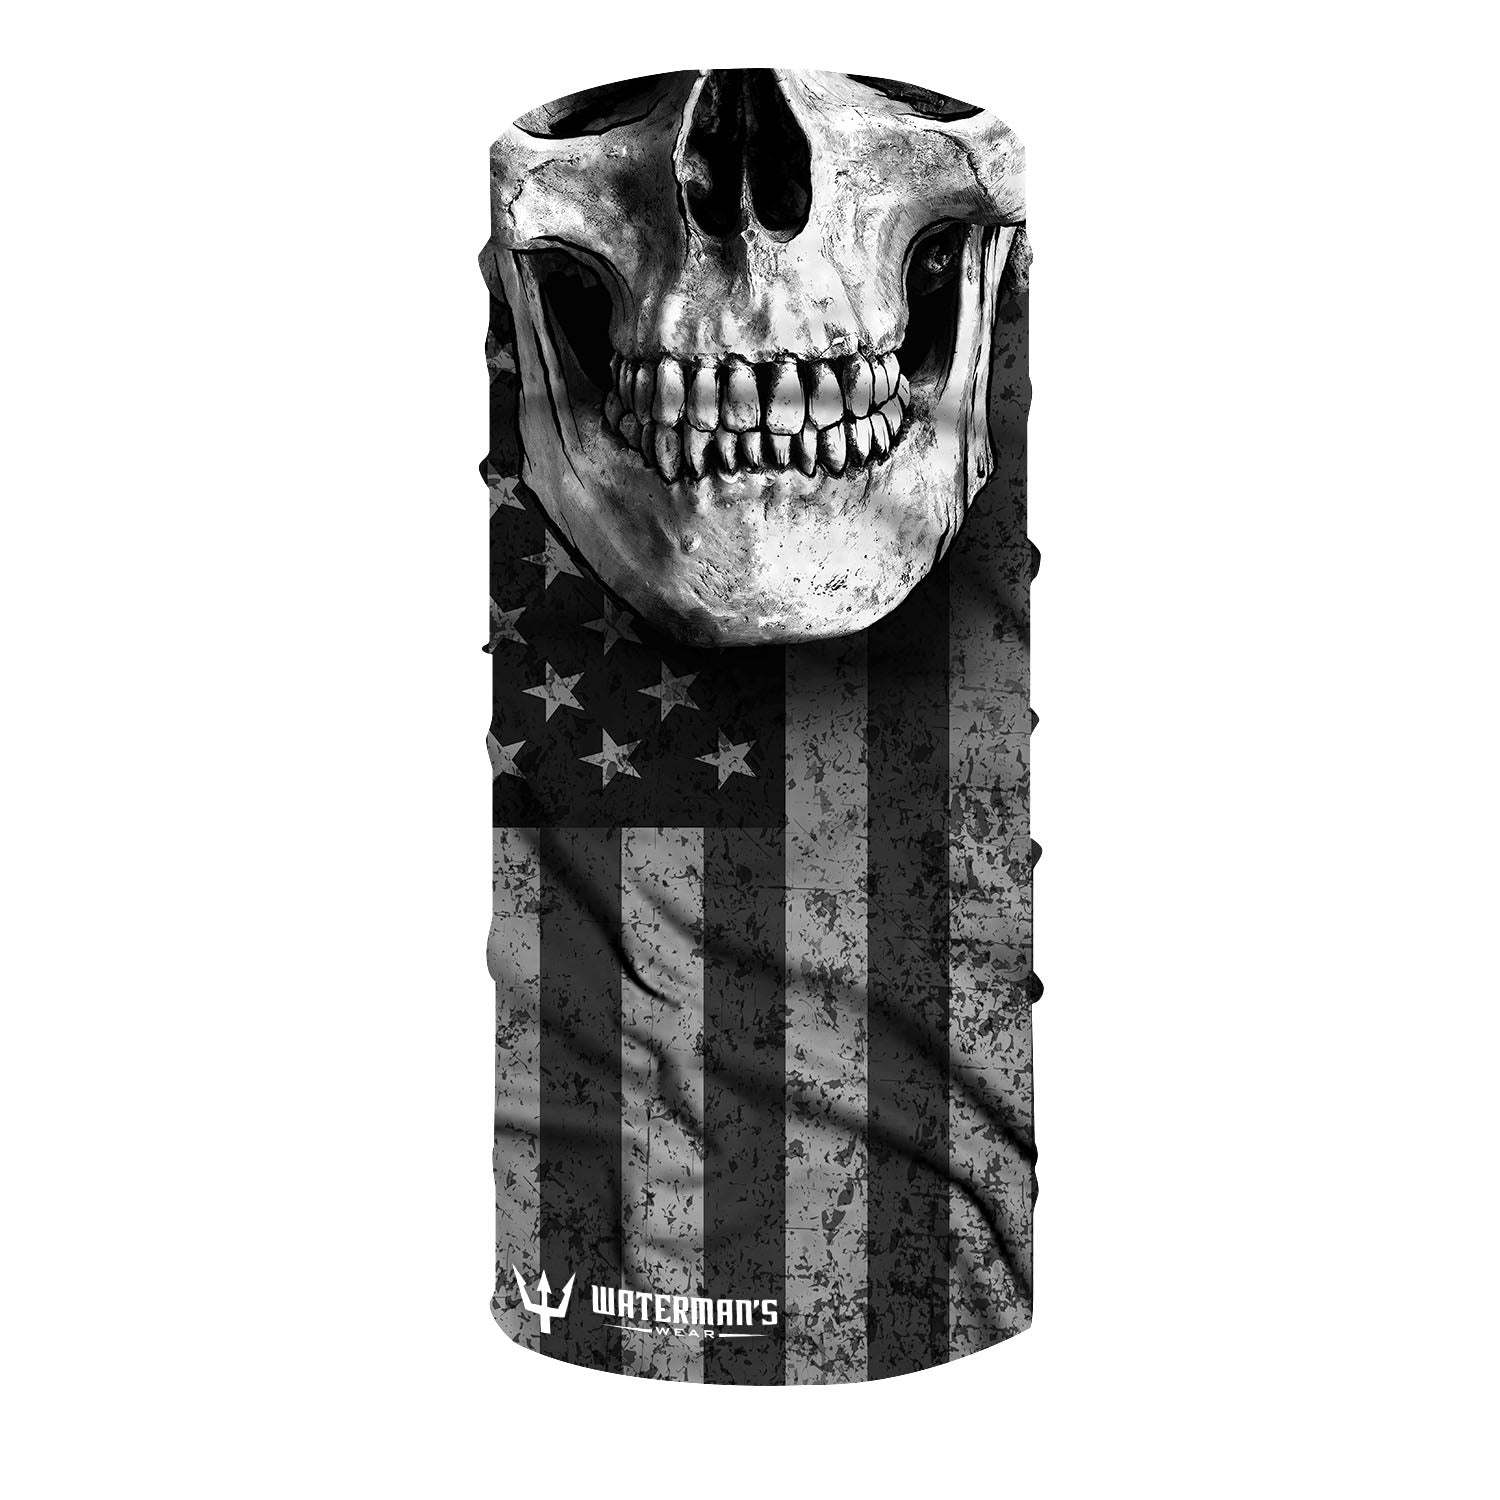 Waterman's Wear Blackout American Flag Skull Face Mask UPF50